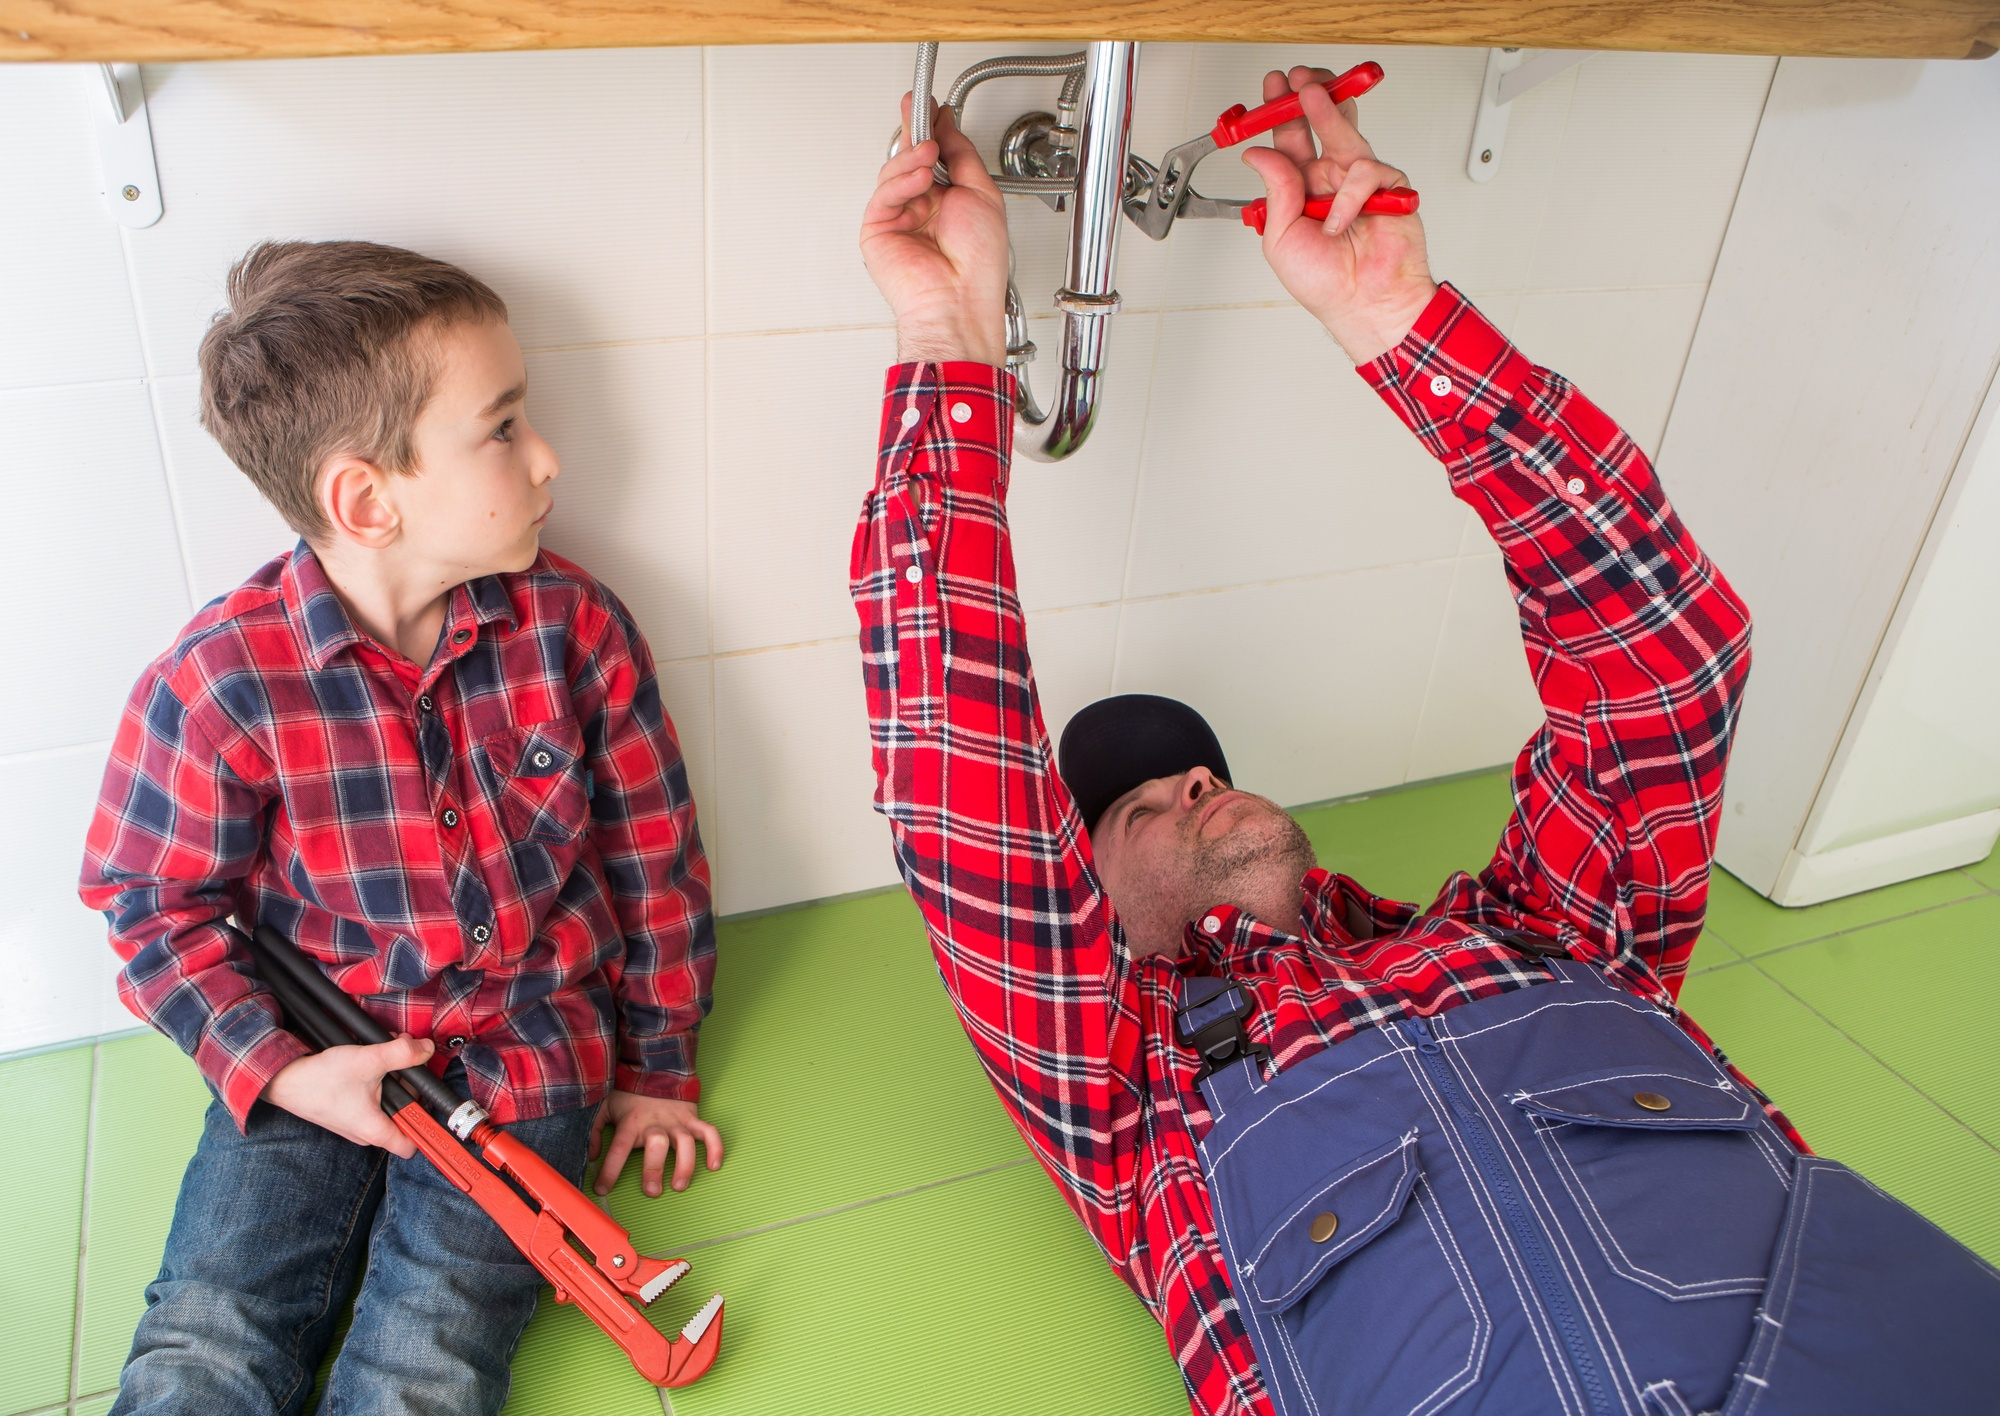 Plumbing 101: 7 Key Reasons to Call a Plumber